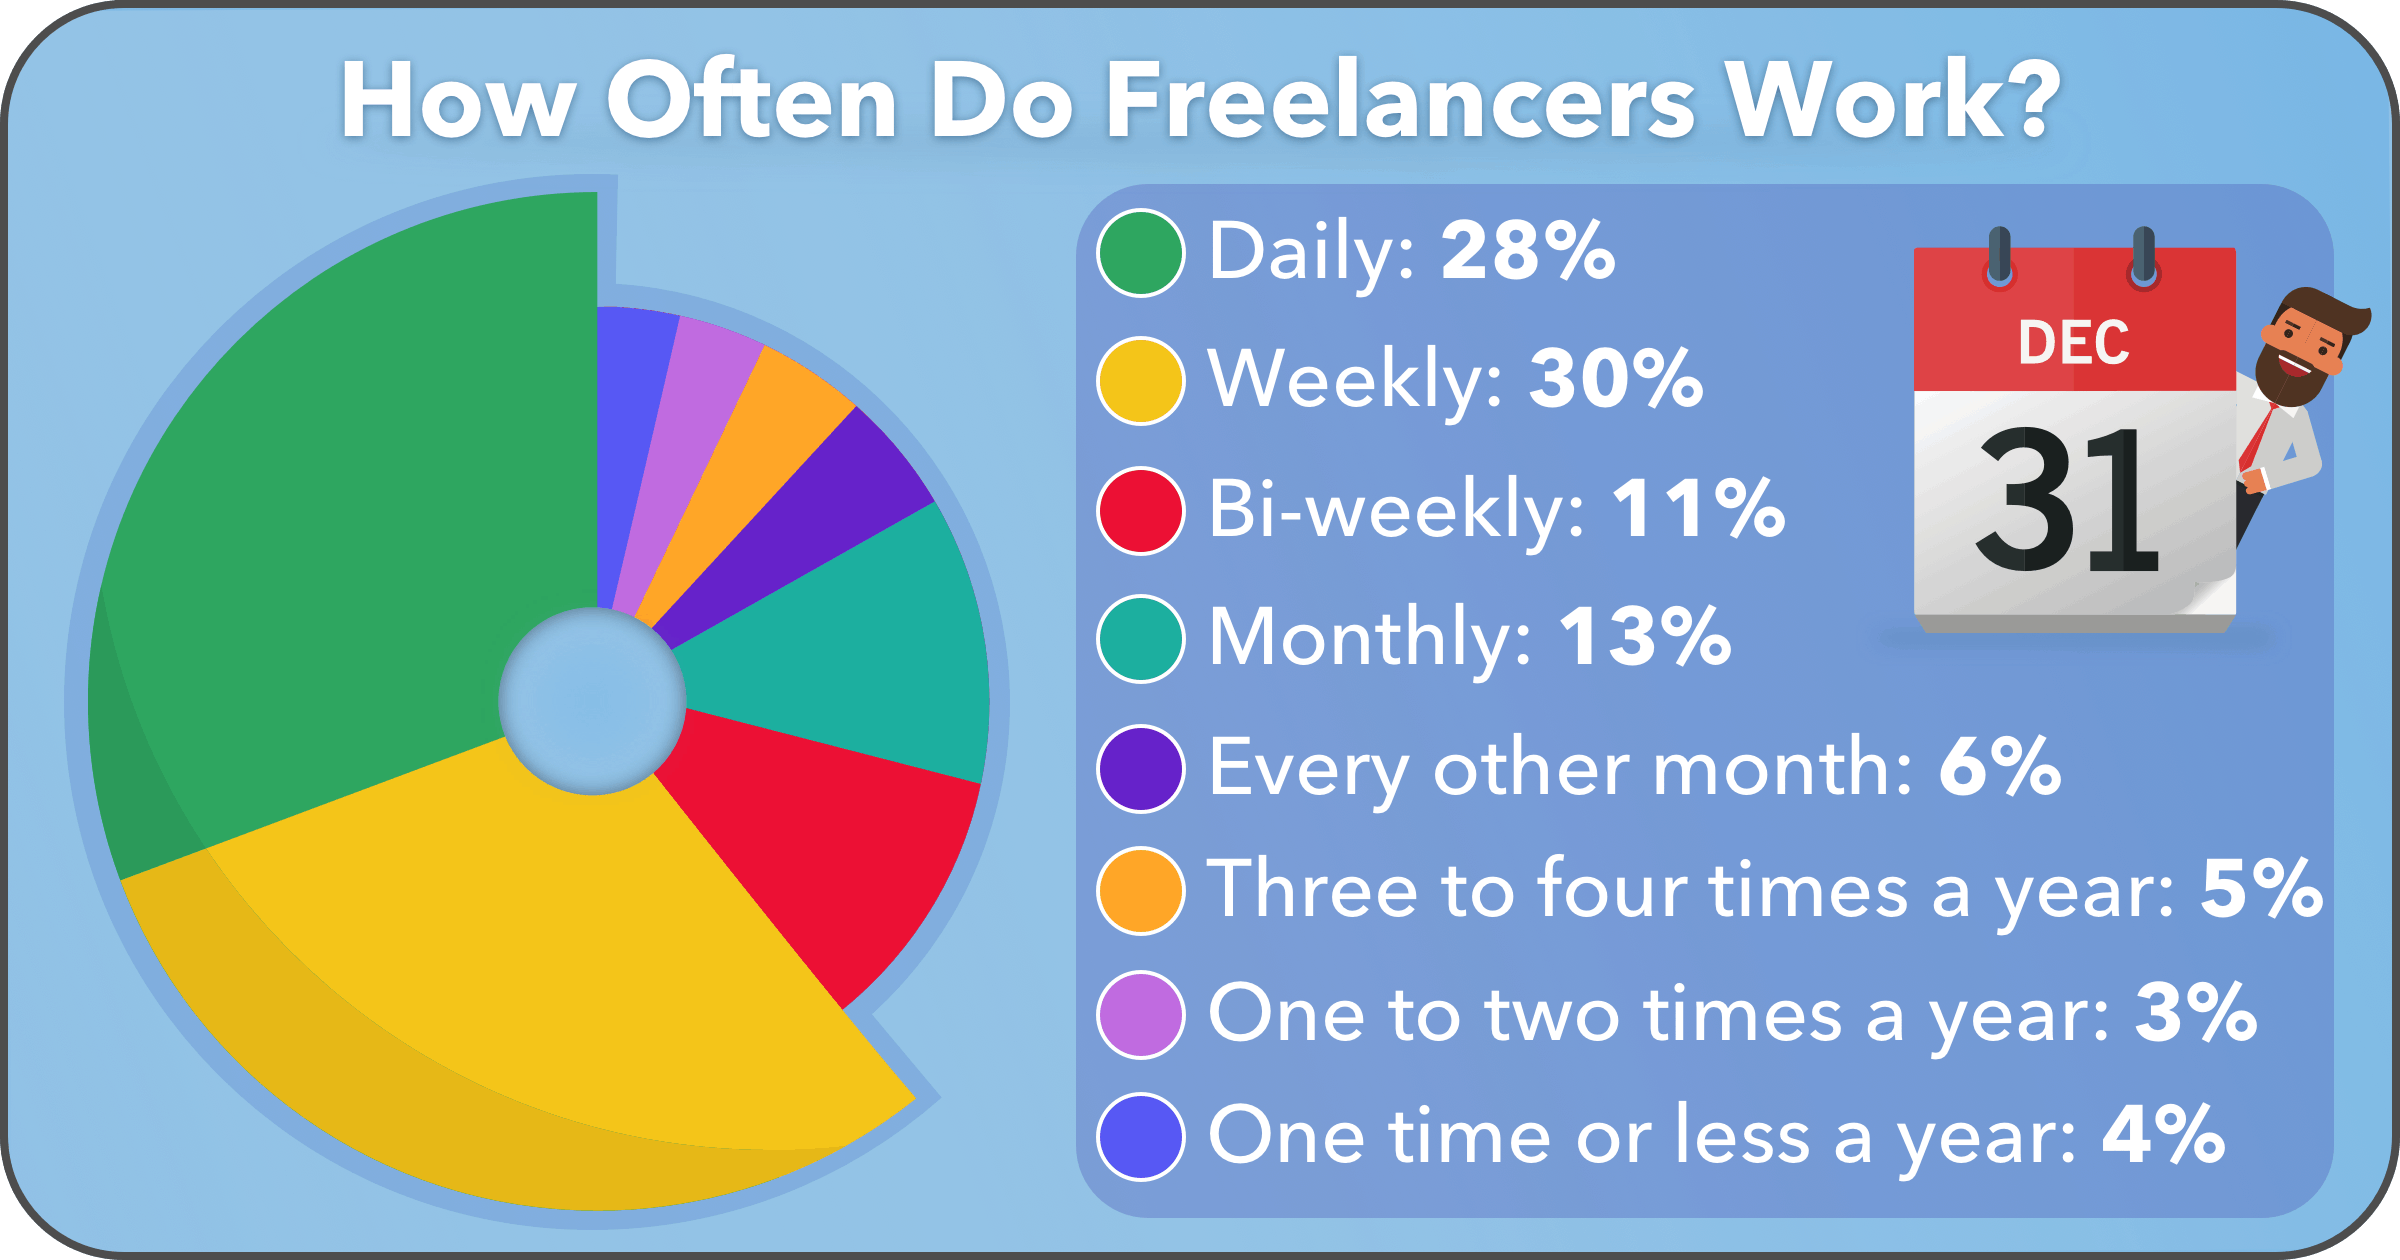 Half of Freelancers Are Intermittent Workers